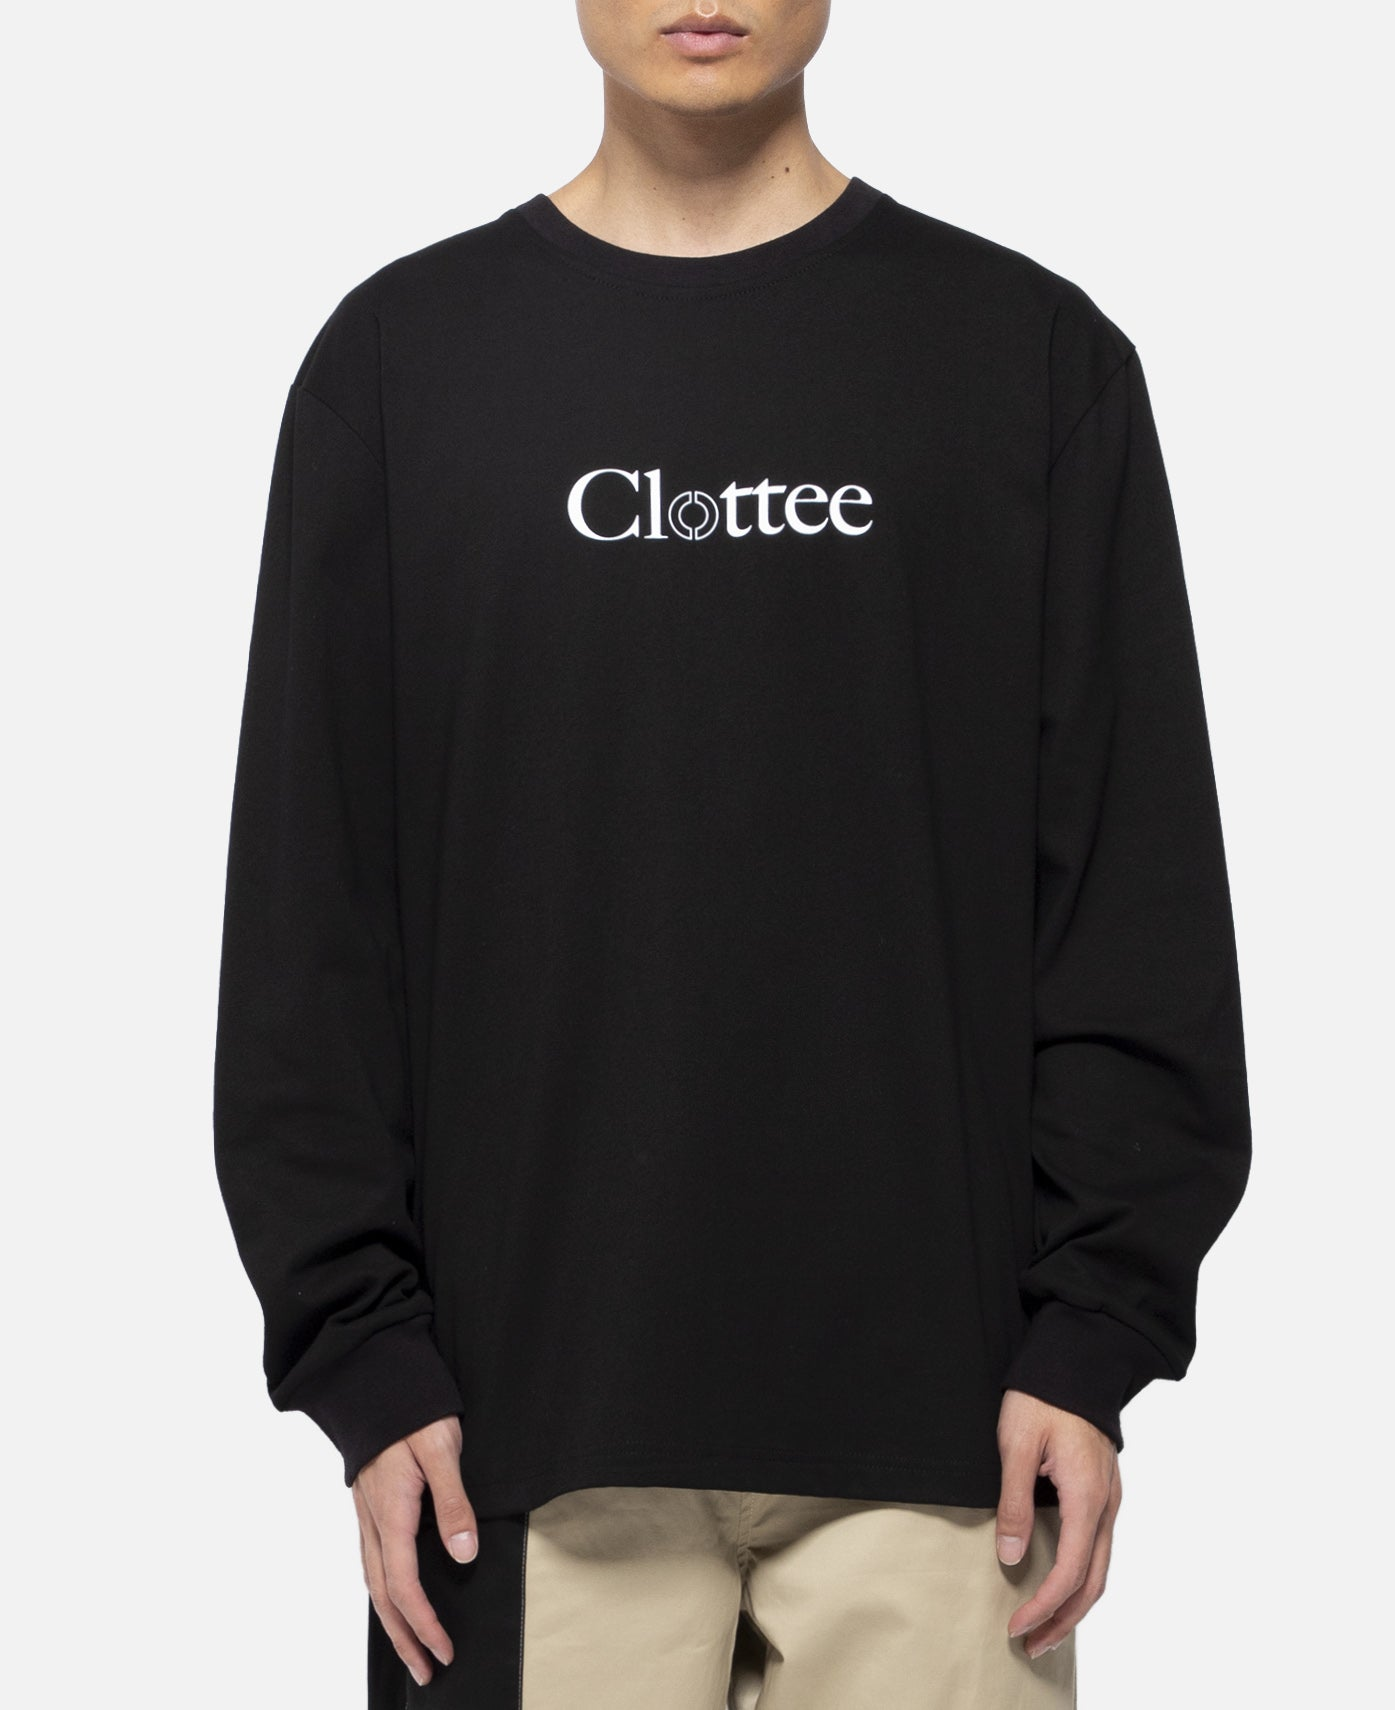 CLOTTEE County L/S T-Shirt (Black)